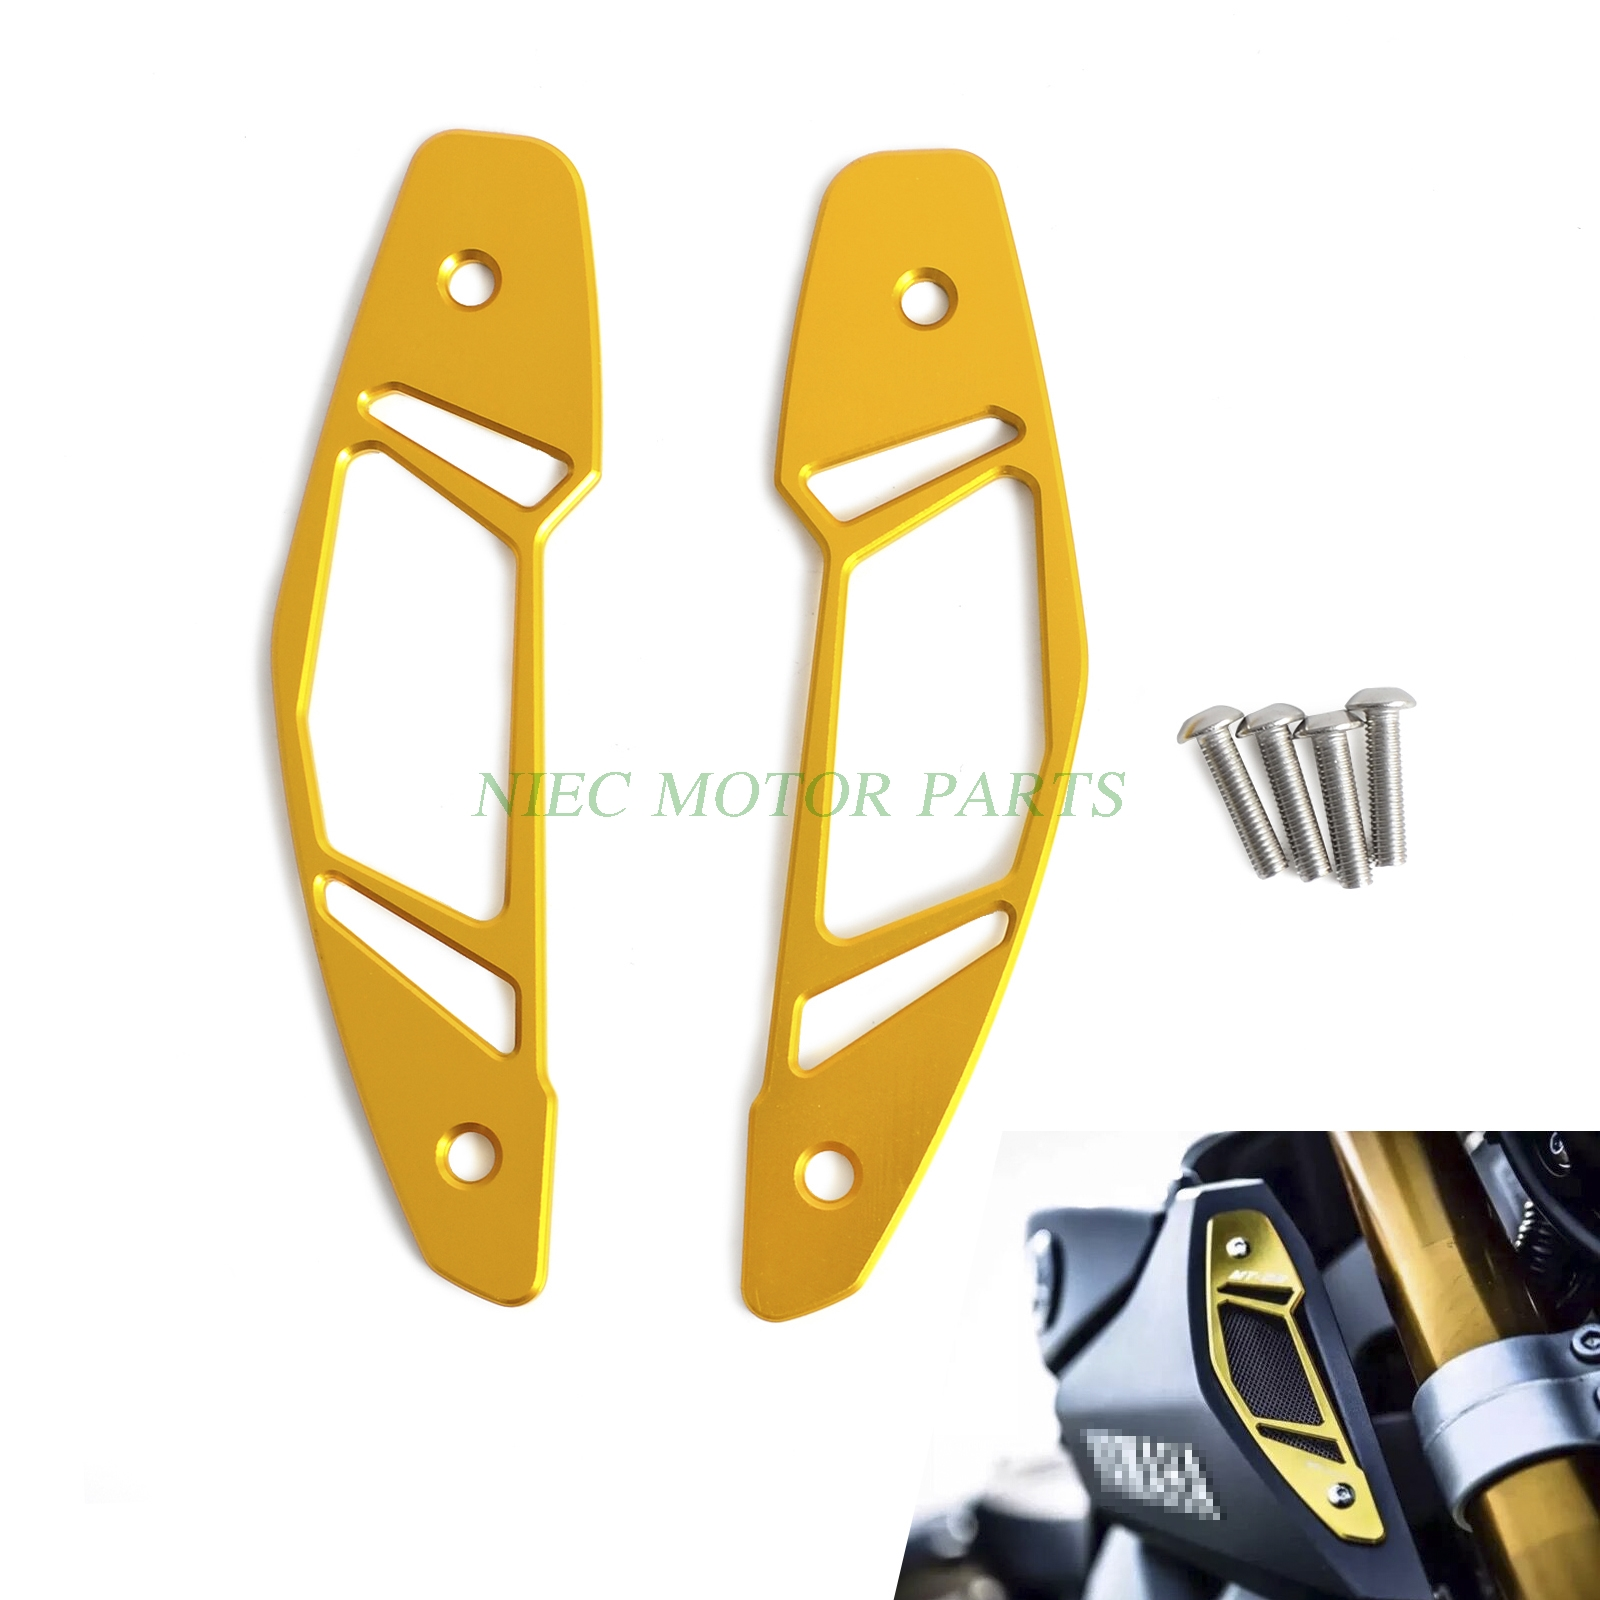 Ram Air Intake Inlet Guard Cover Protector For YAMAHA MT-09 MT09 FZ-09 FZ09 RN29 2013 2014 2015 2016 NEW mt09 mt 09 2014 2016 water coolant recovery tank shielding guard frame cover protector for yamaha mt 09 fz 09 fz09 cnc